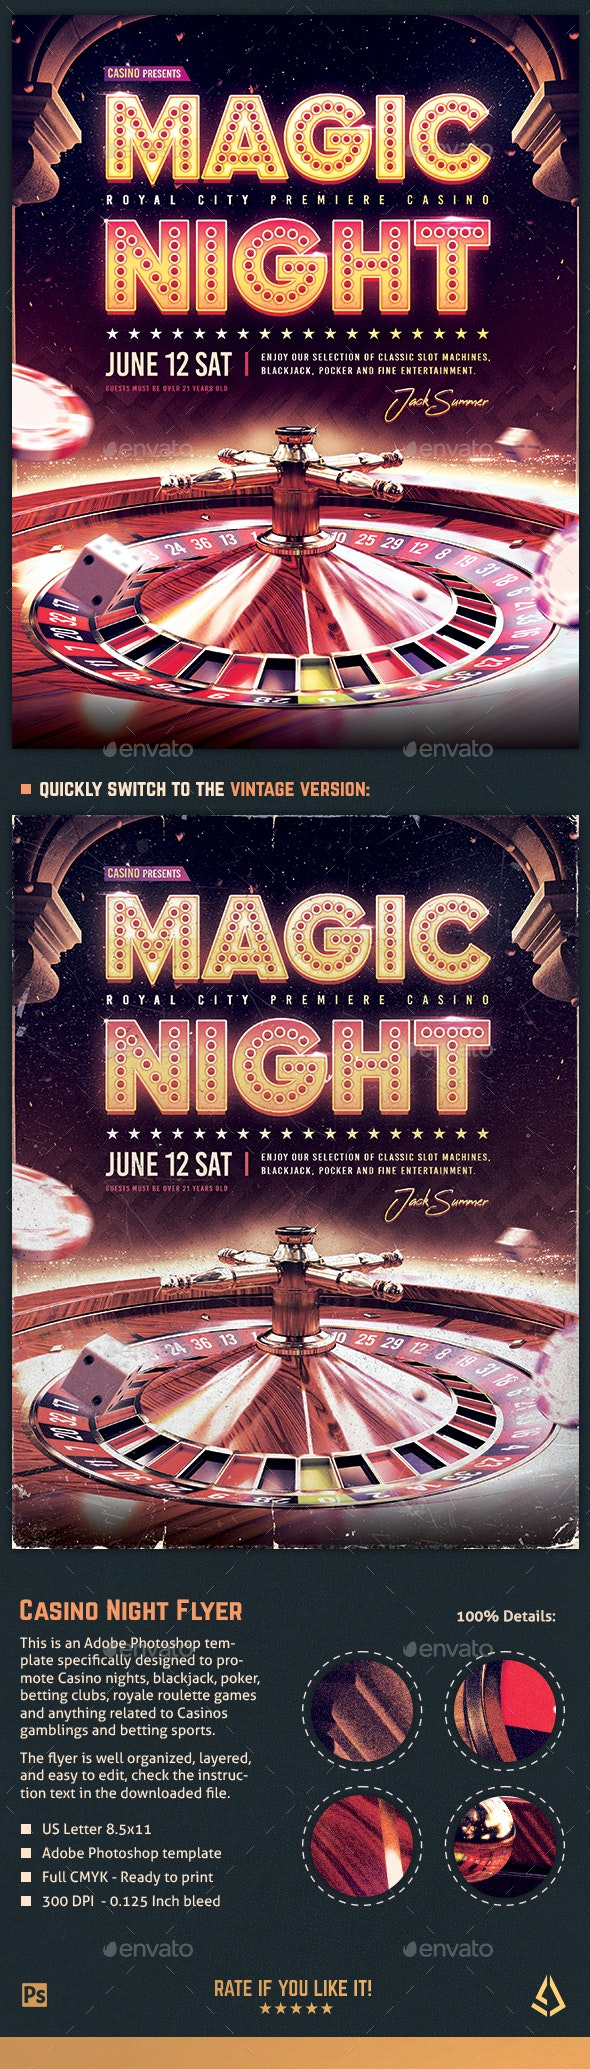 Casino Night Flyer Roulette Royale Template - Miscellaneous Events